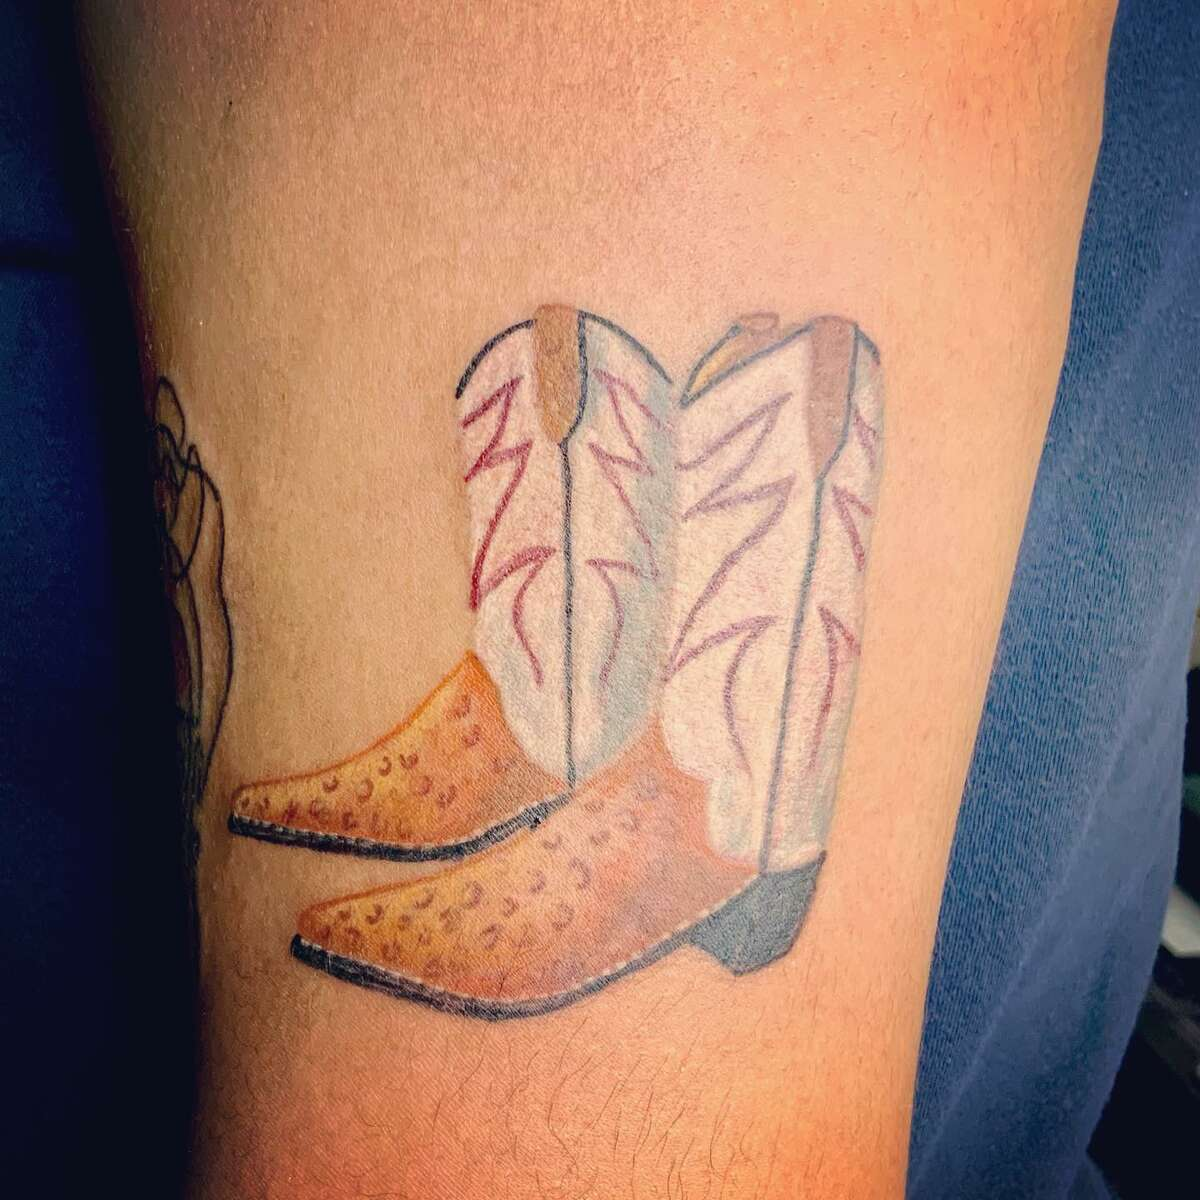 North Star Mall's pair of gigantic cowboy boots have a tiny, tattooed twin on the arm of a San Antonio woman.